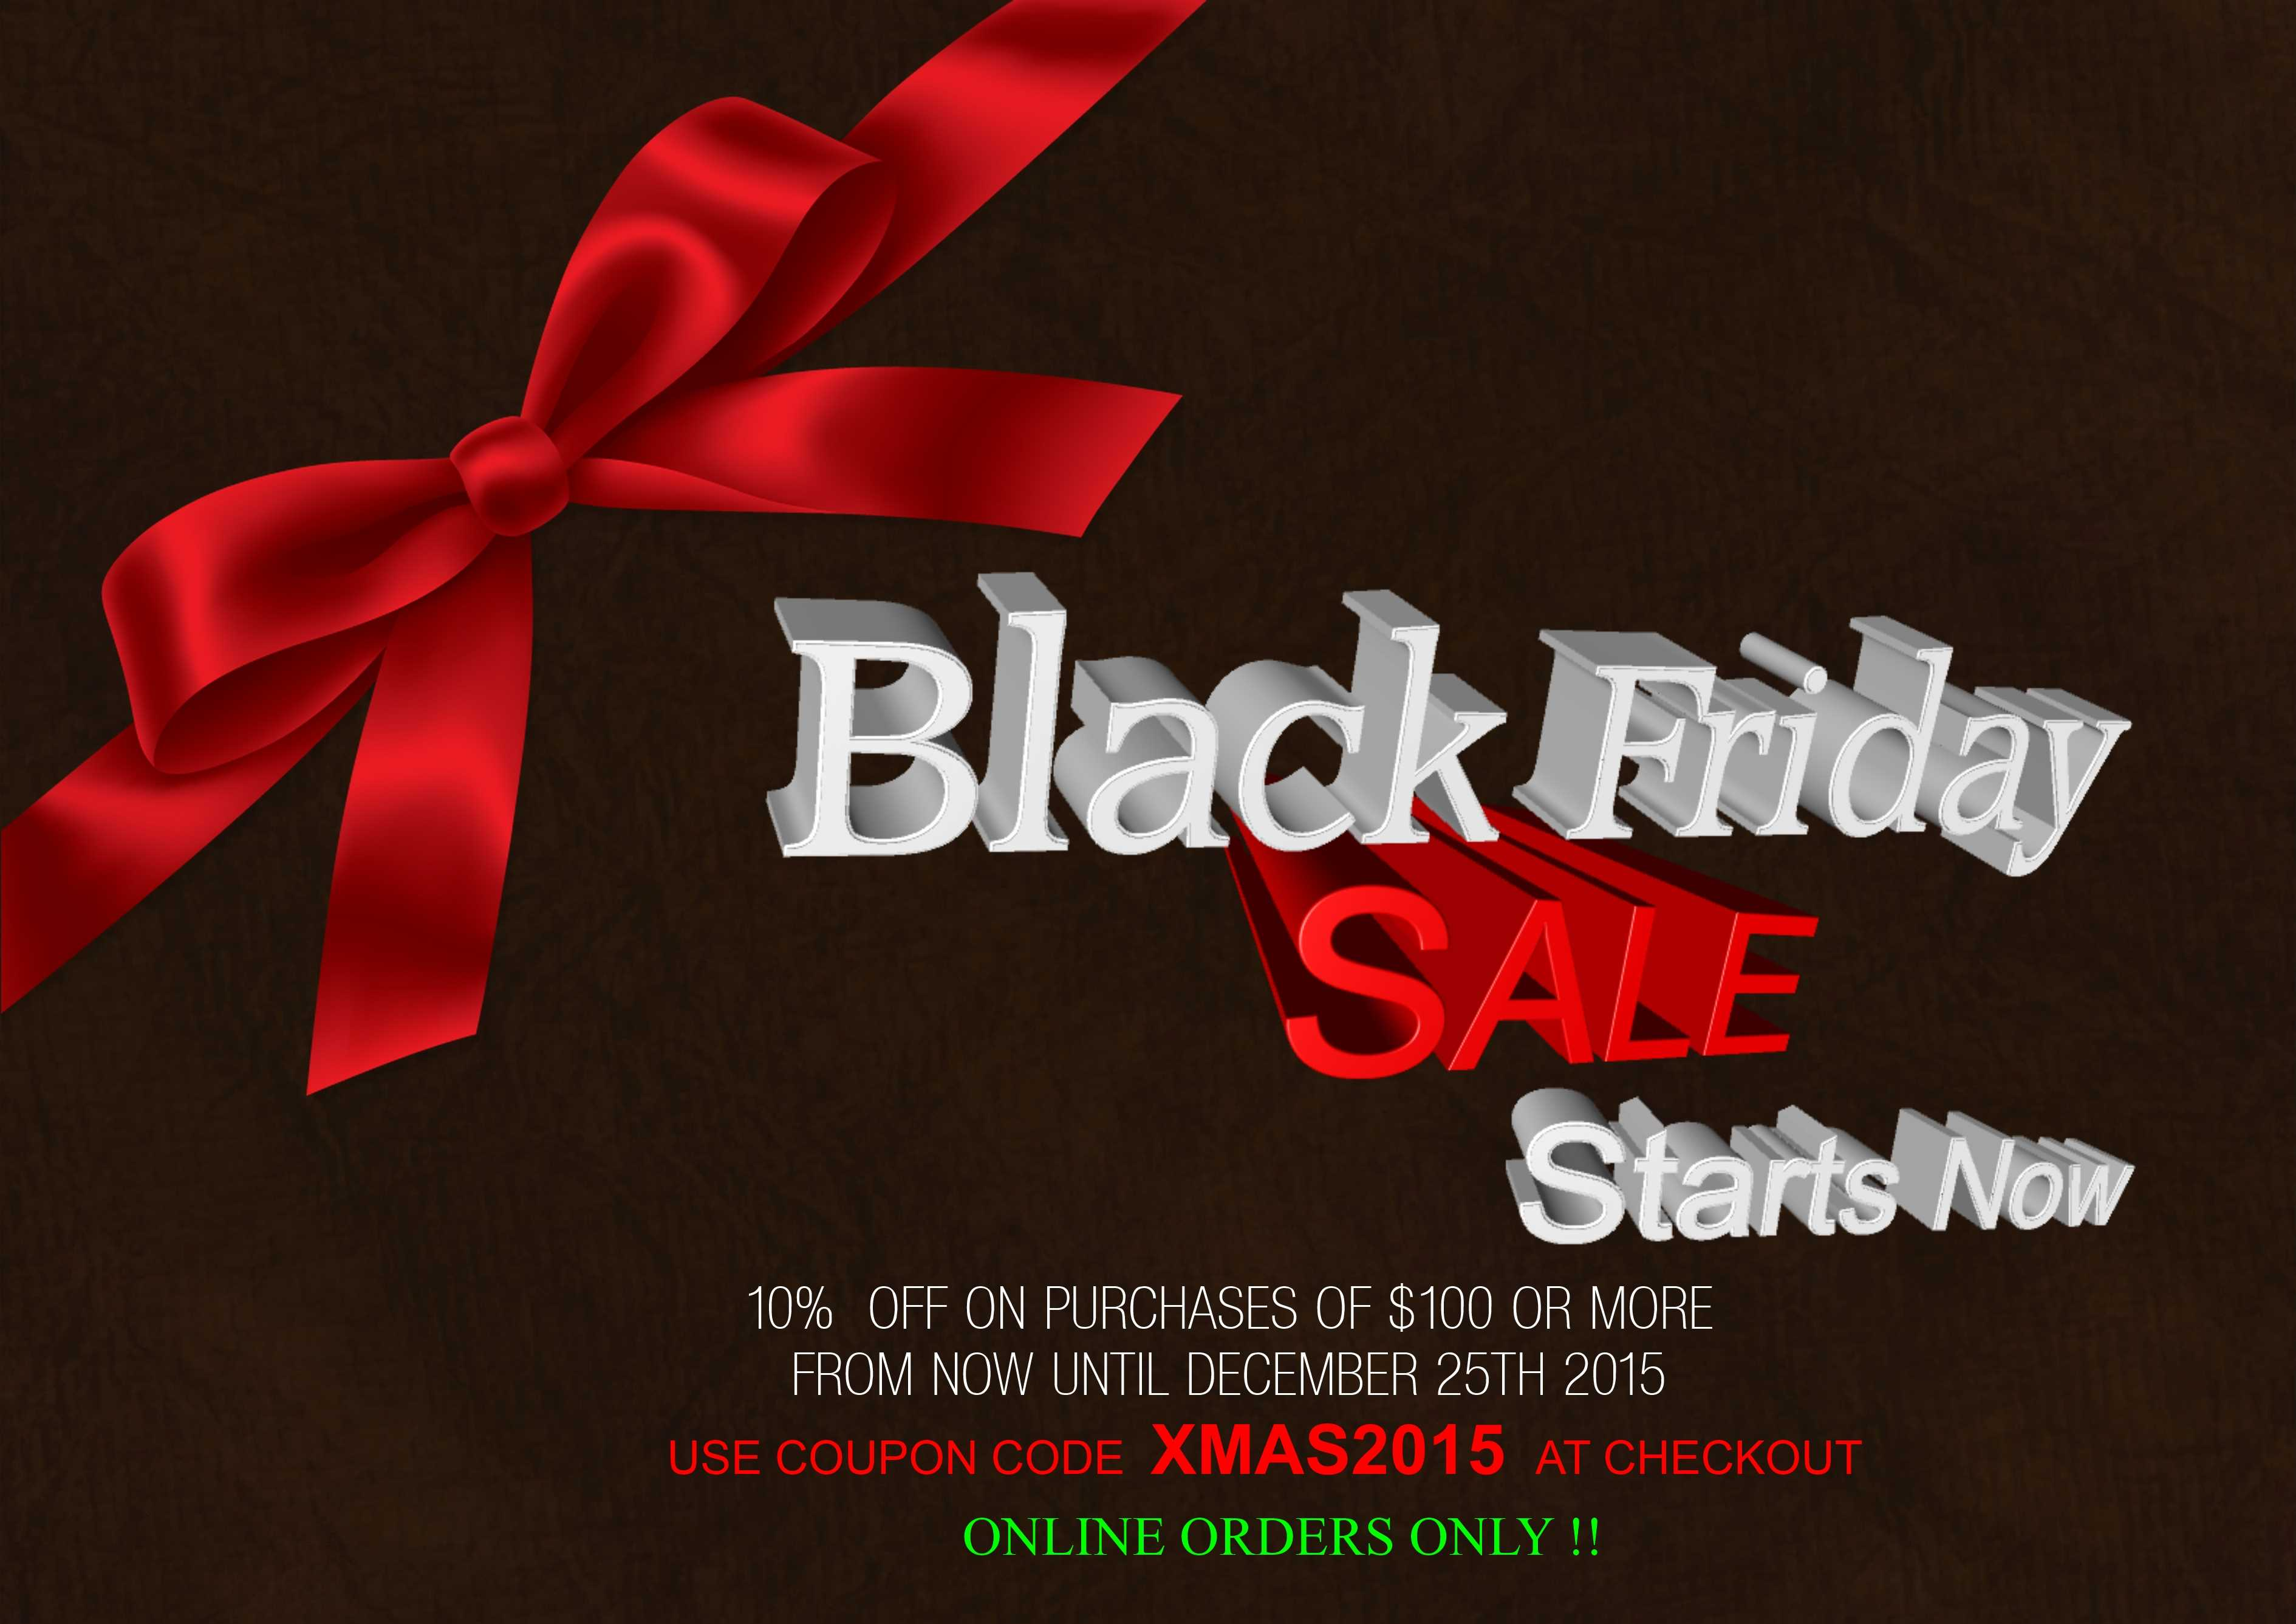 Black Friday Sale - Tractor Parts